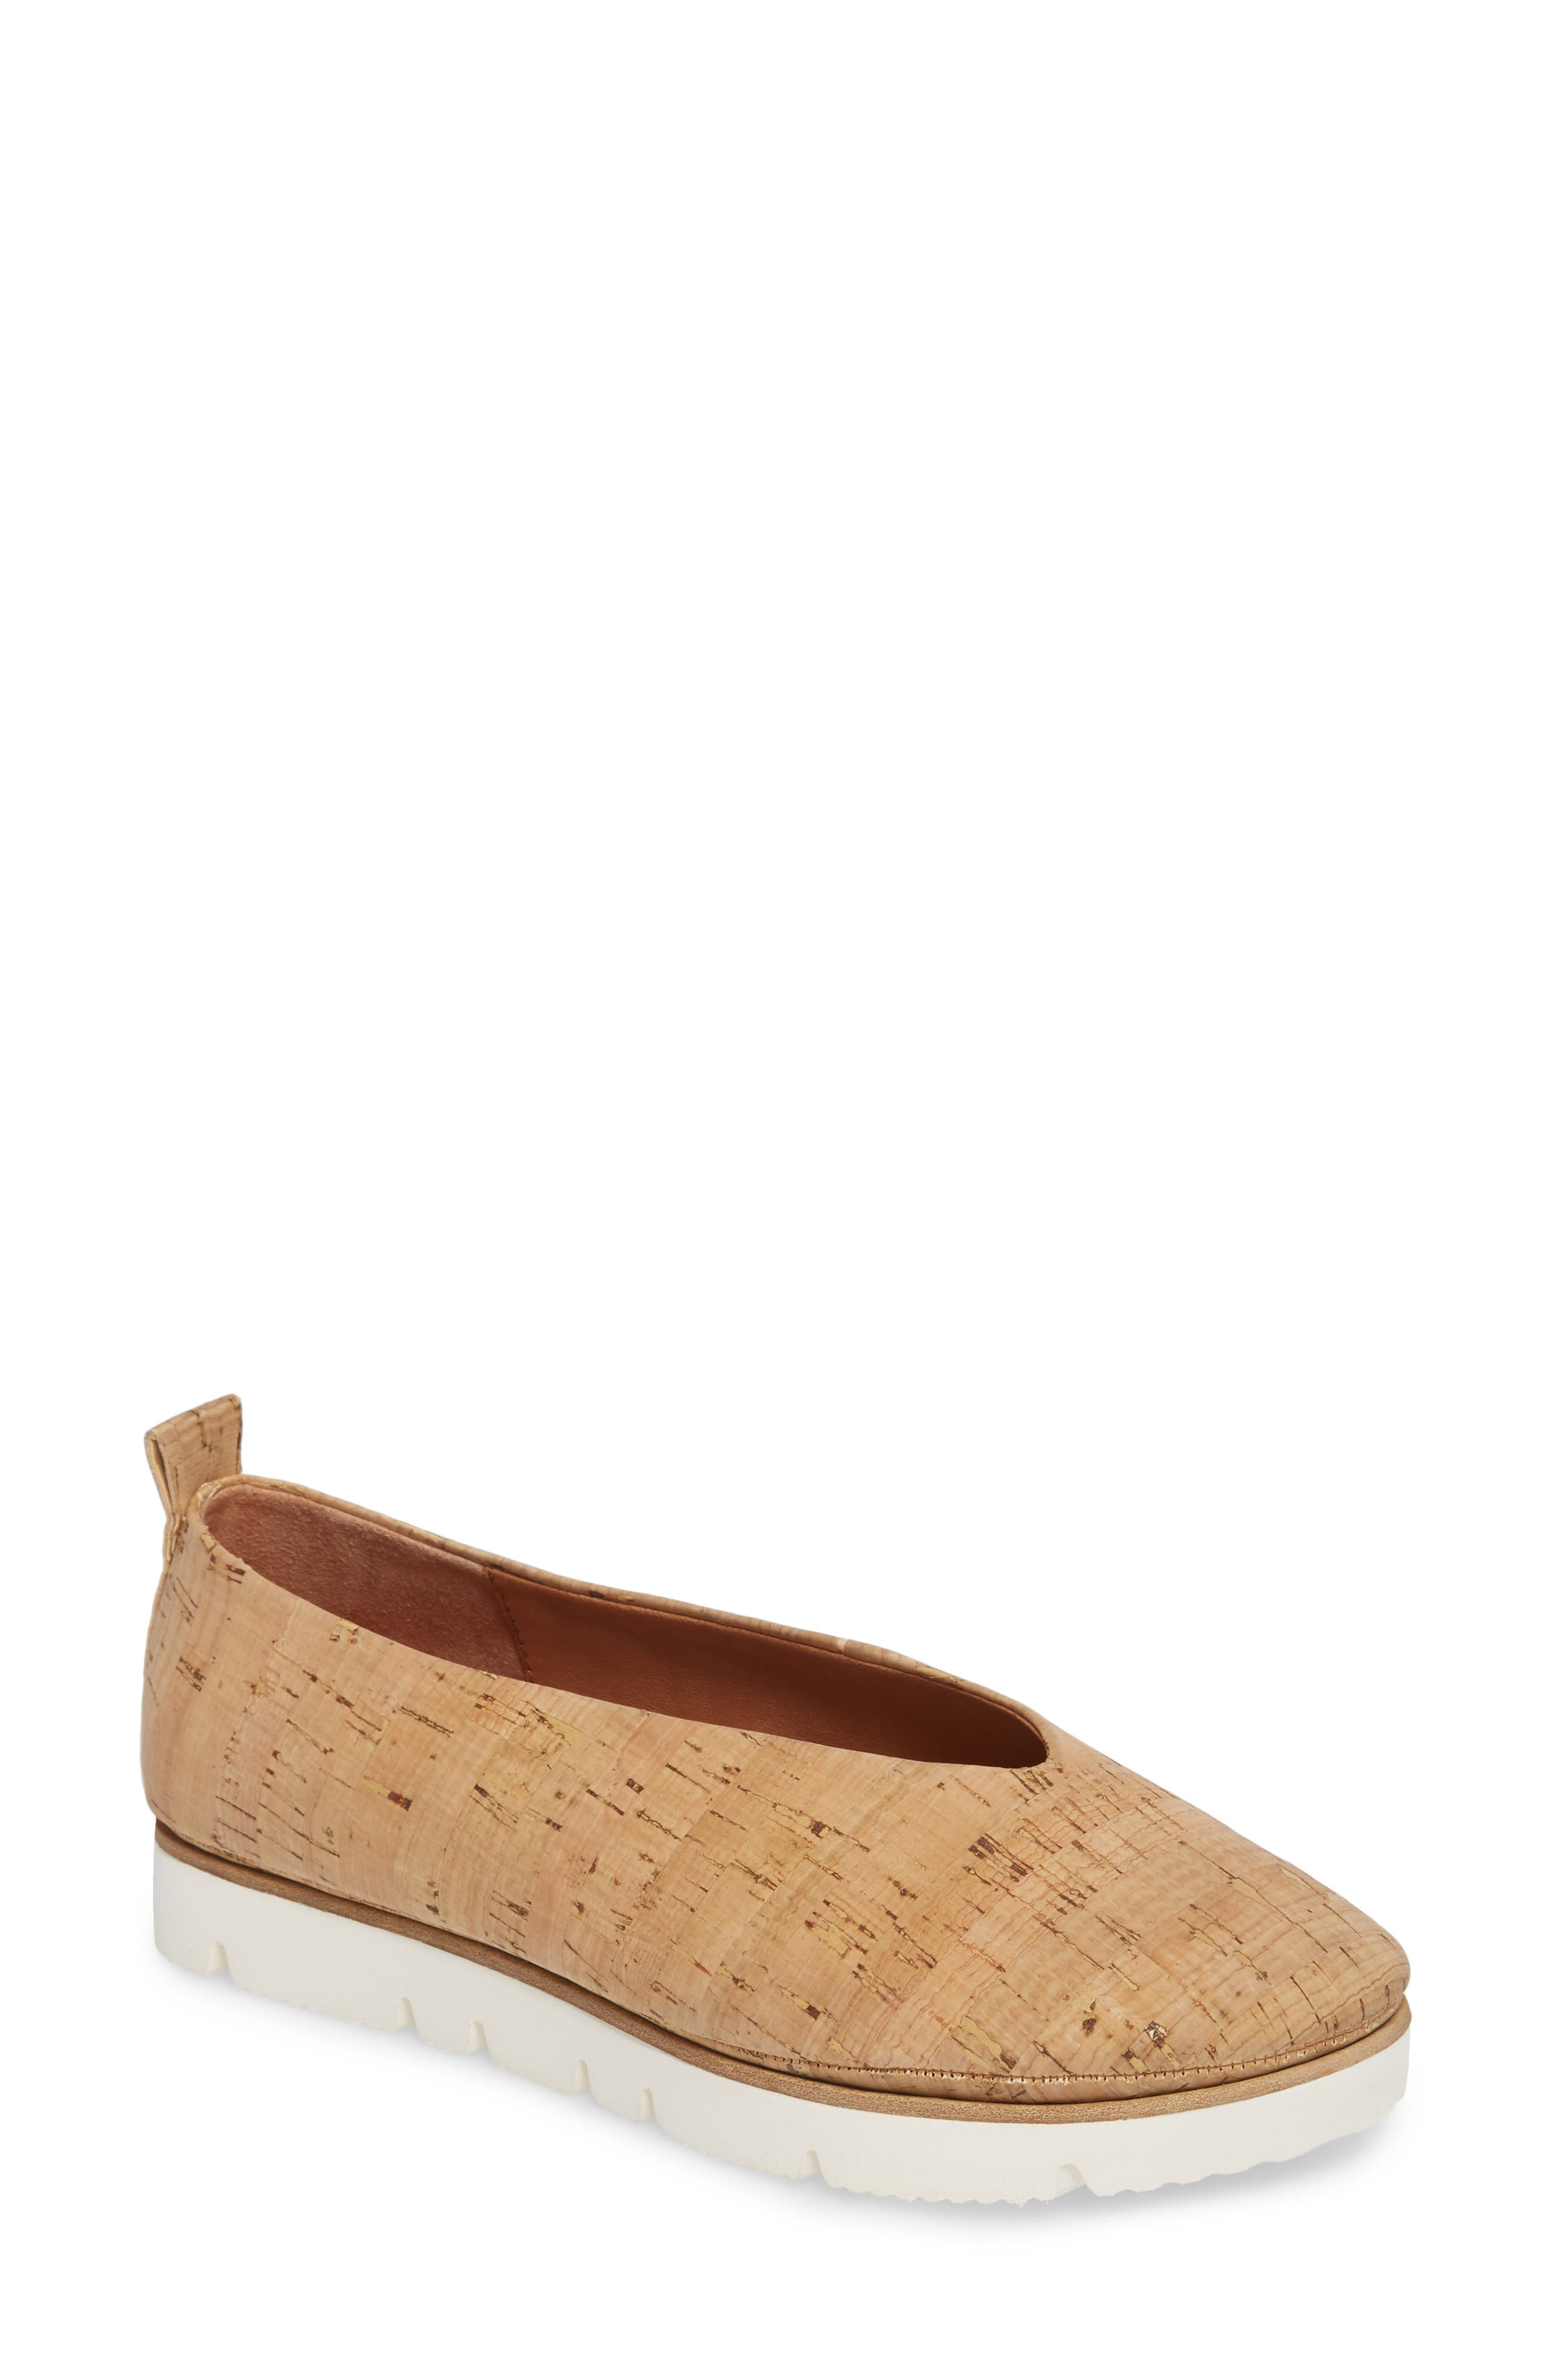 Gentle Souls By Kenneth Cole Demi Flat, Brown